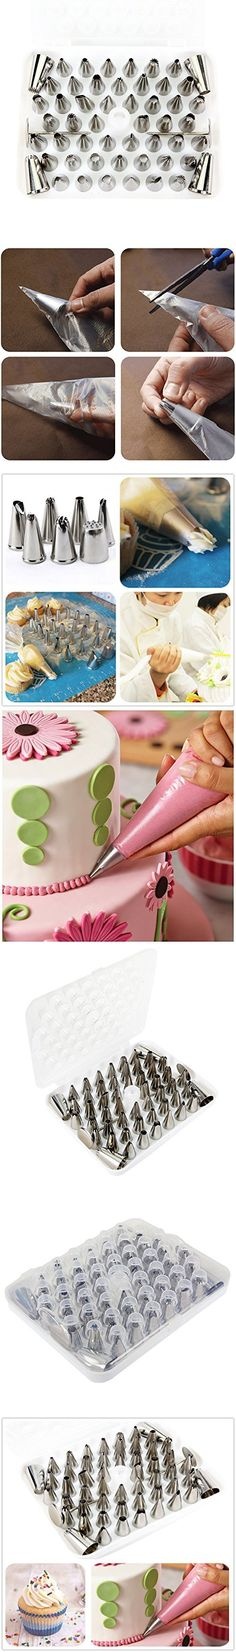 Utilwise Professional Icing Piping Tip 14 Piece Set Cake Decorating New In Box Kitchen, Dining & Bar